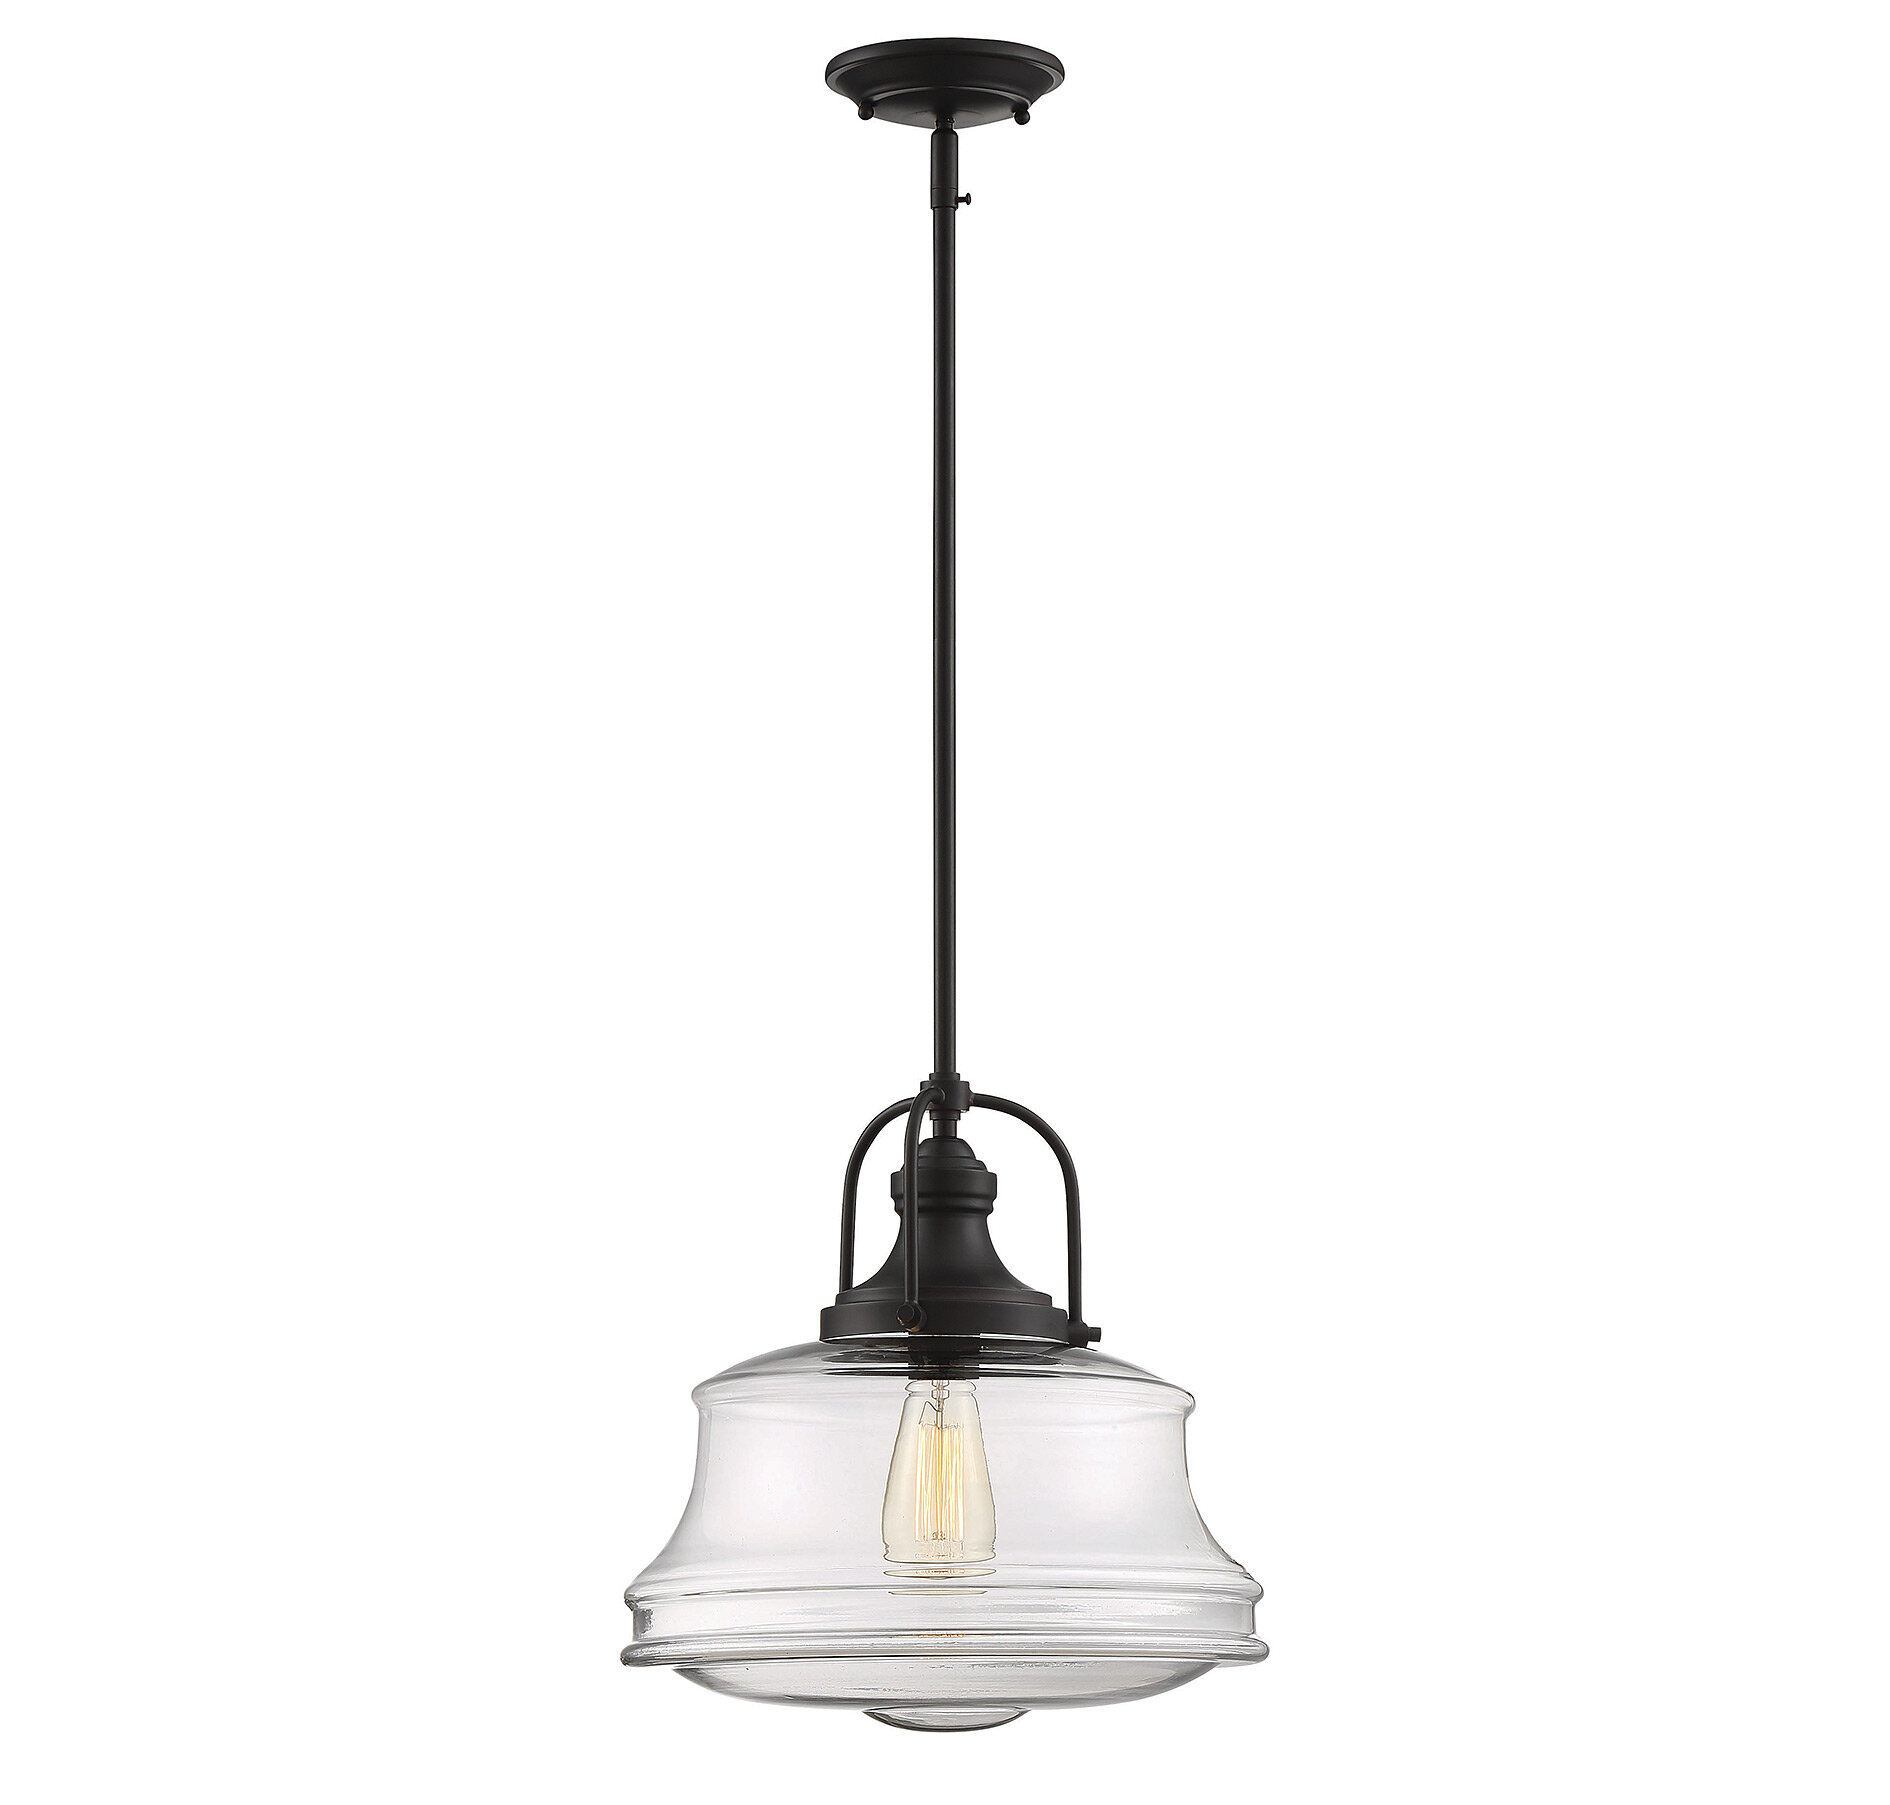 preservation station shades schoolhouse with tn nashville original pendant antique lights